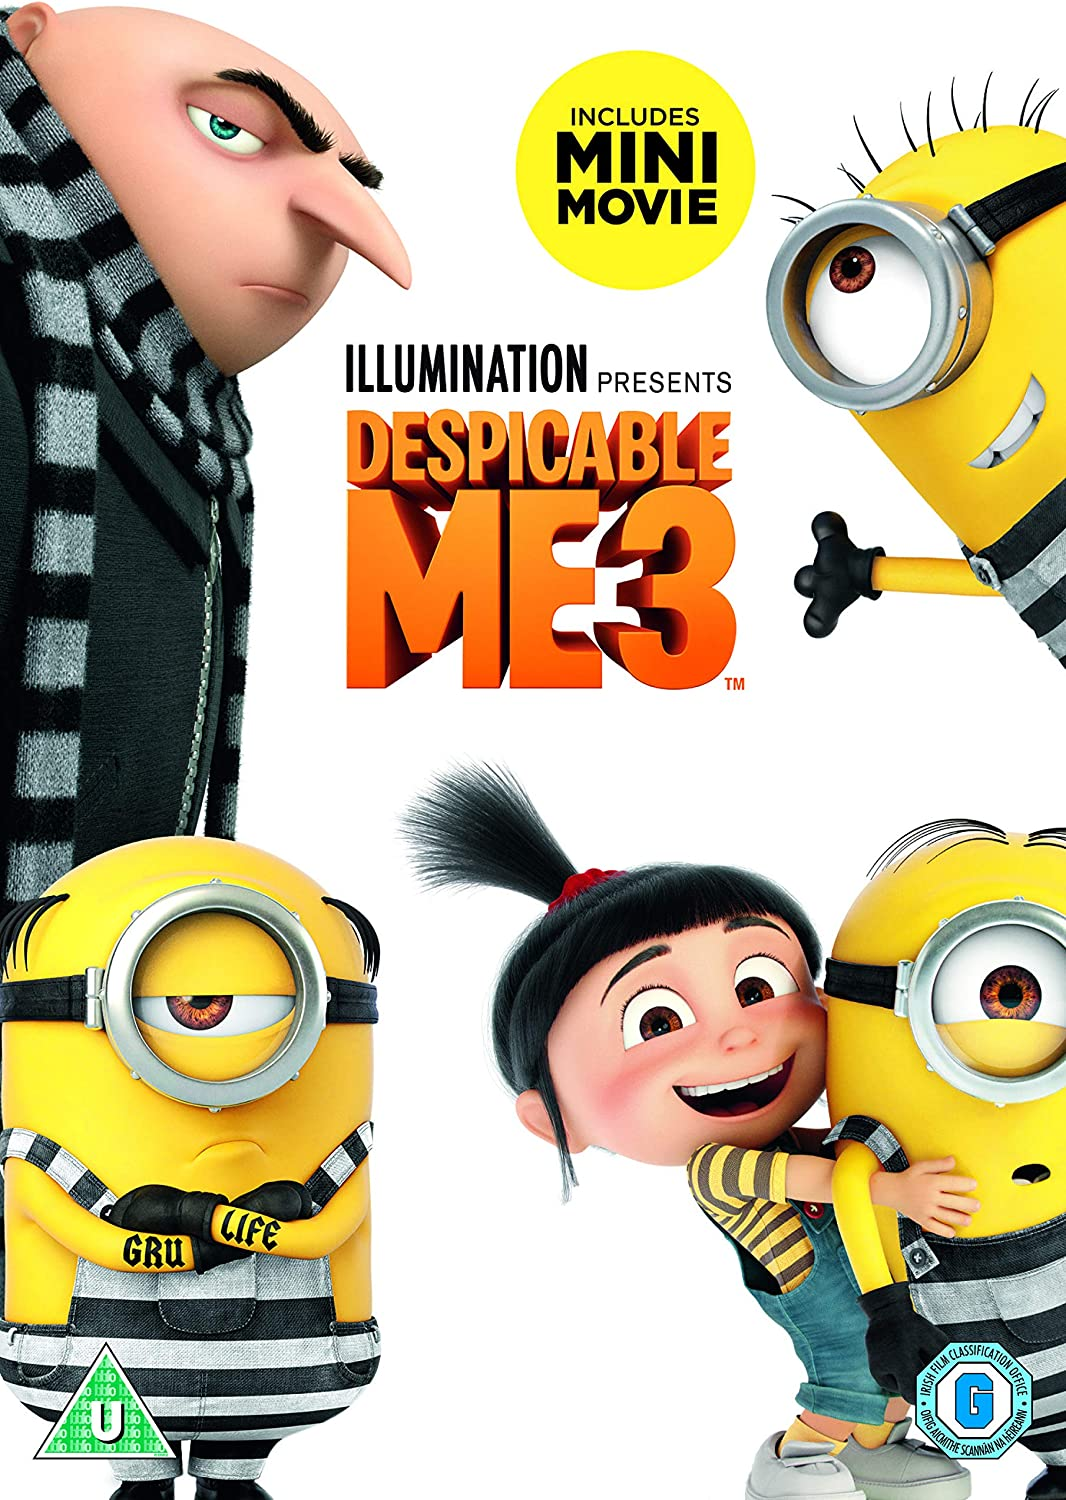 Despicable Me 3 Dvd 2017 Amazon Co Uk Kyle Balda Pierre Coffin Janet Healy Christopher Meledandri Cinco Paul Ken Daurio Dvd Blu Ray